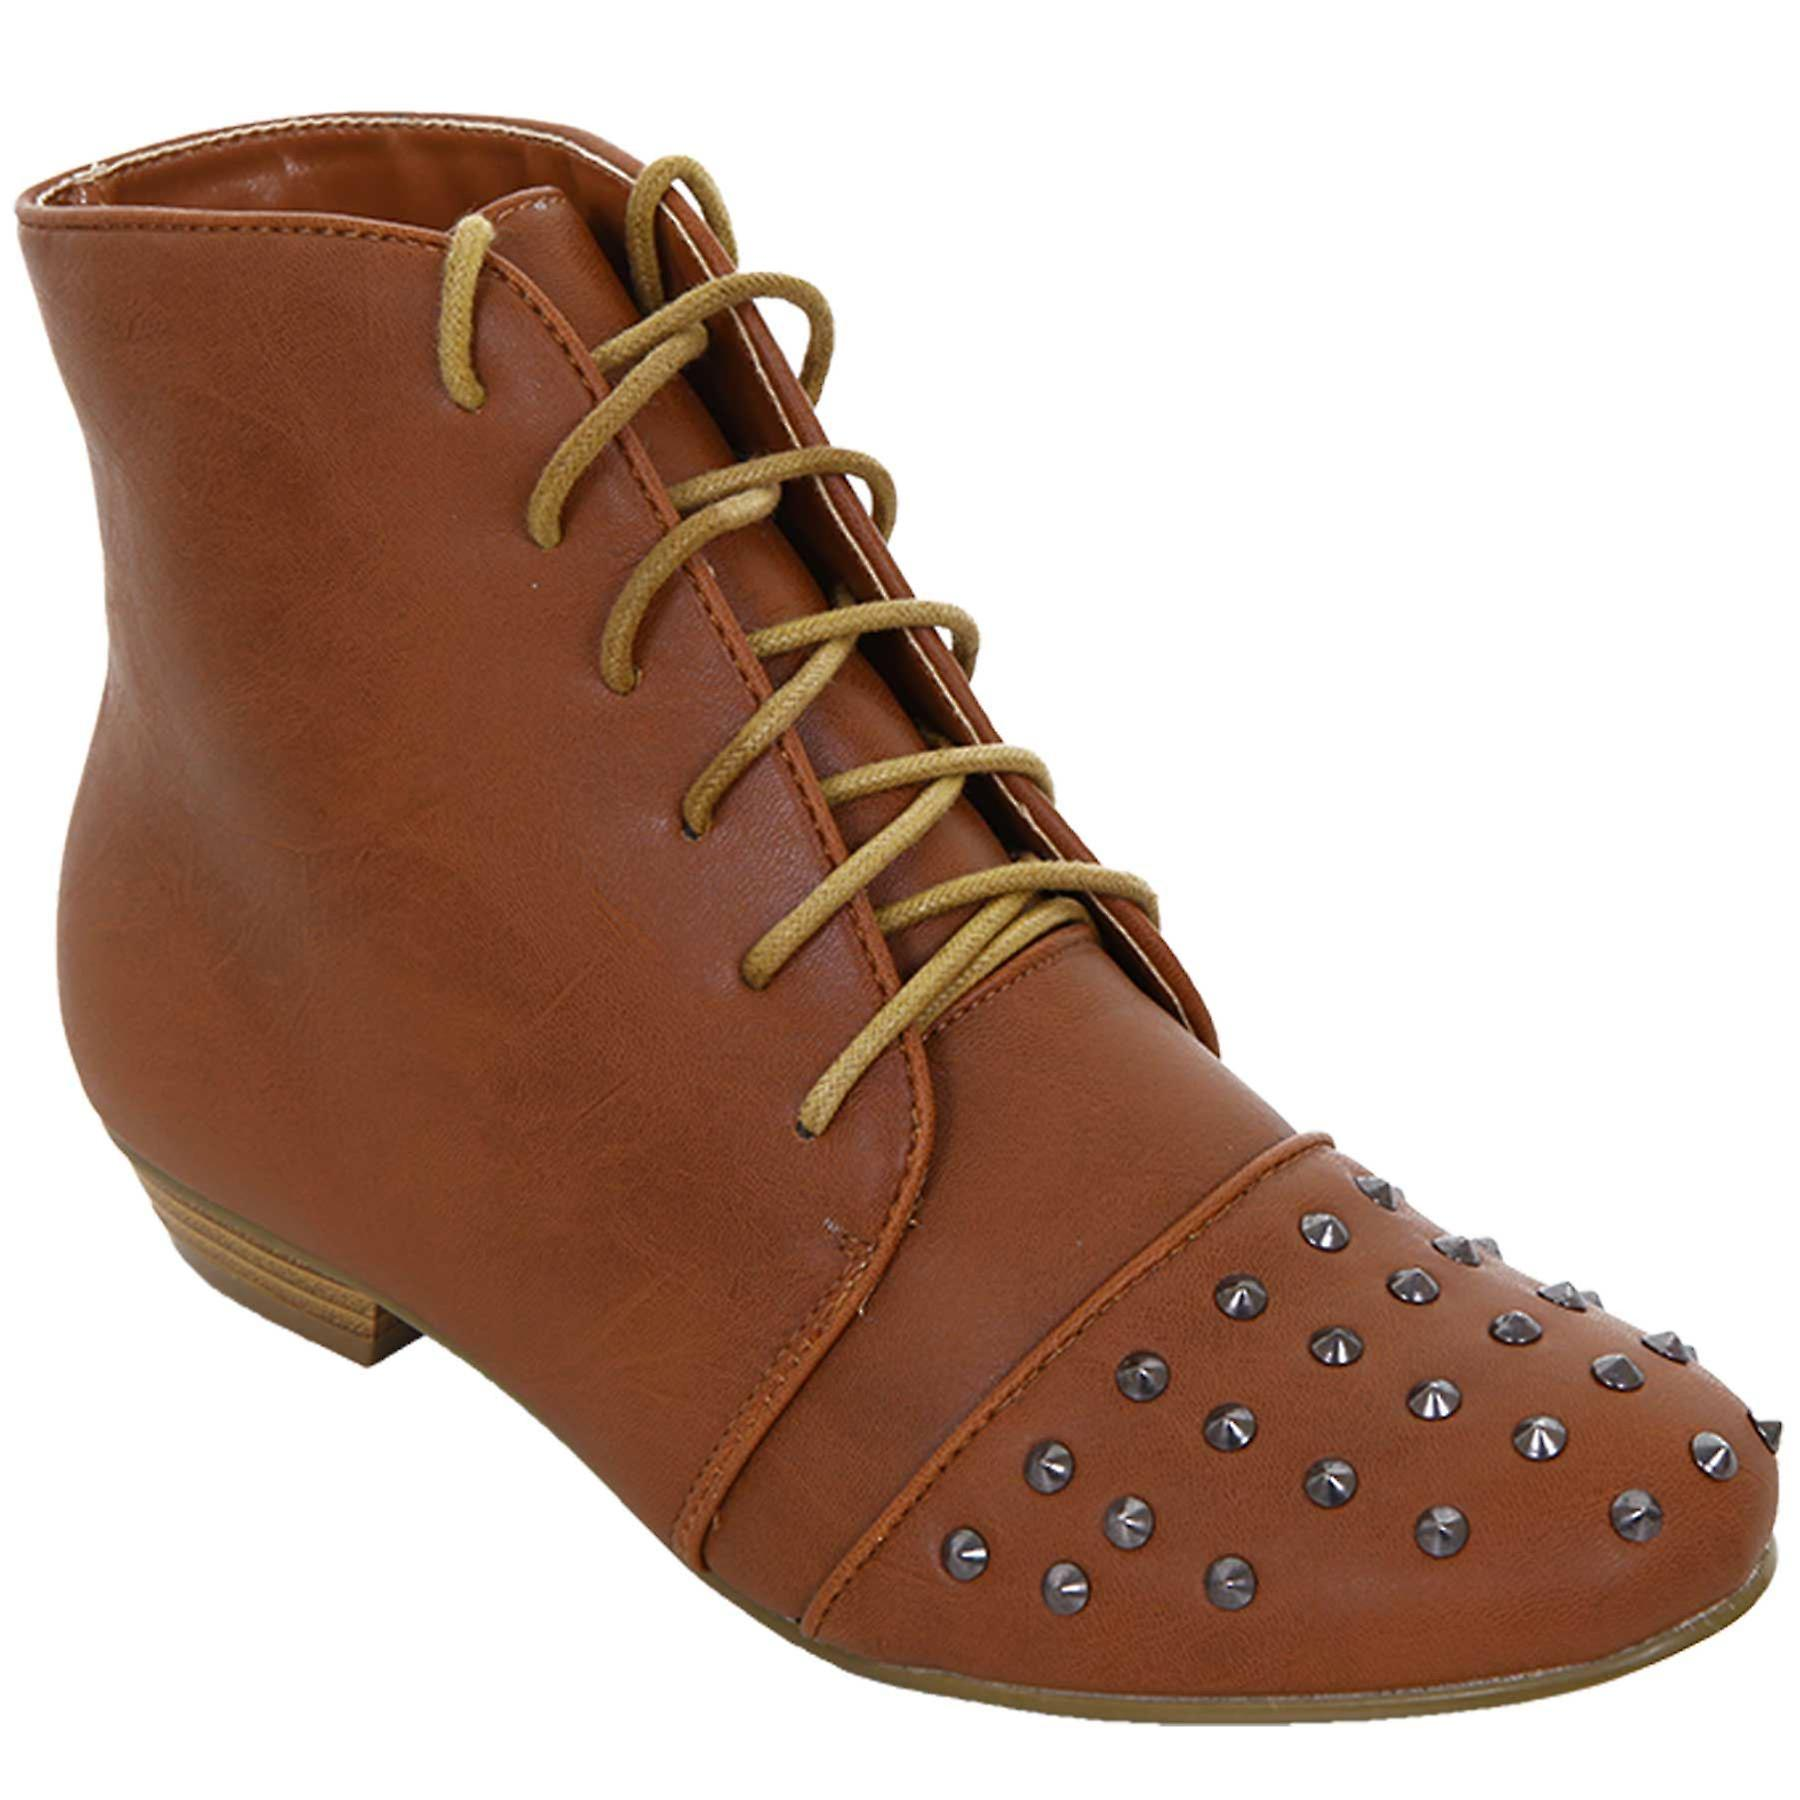 Ladies Studded Lace Up Faux Leather Tan Black Women's Flat Boots Shoes